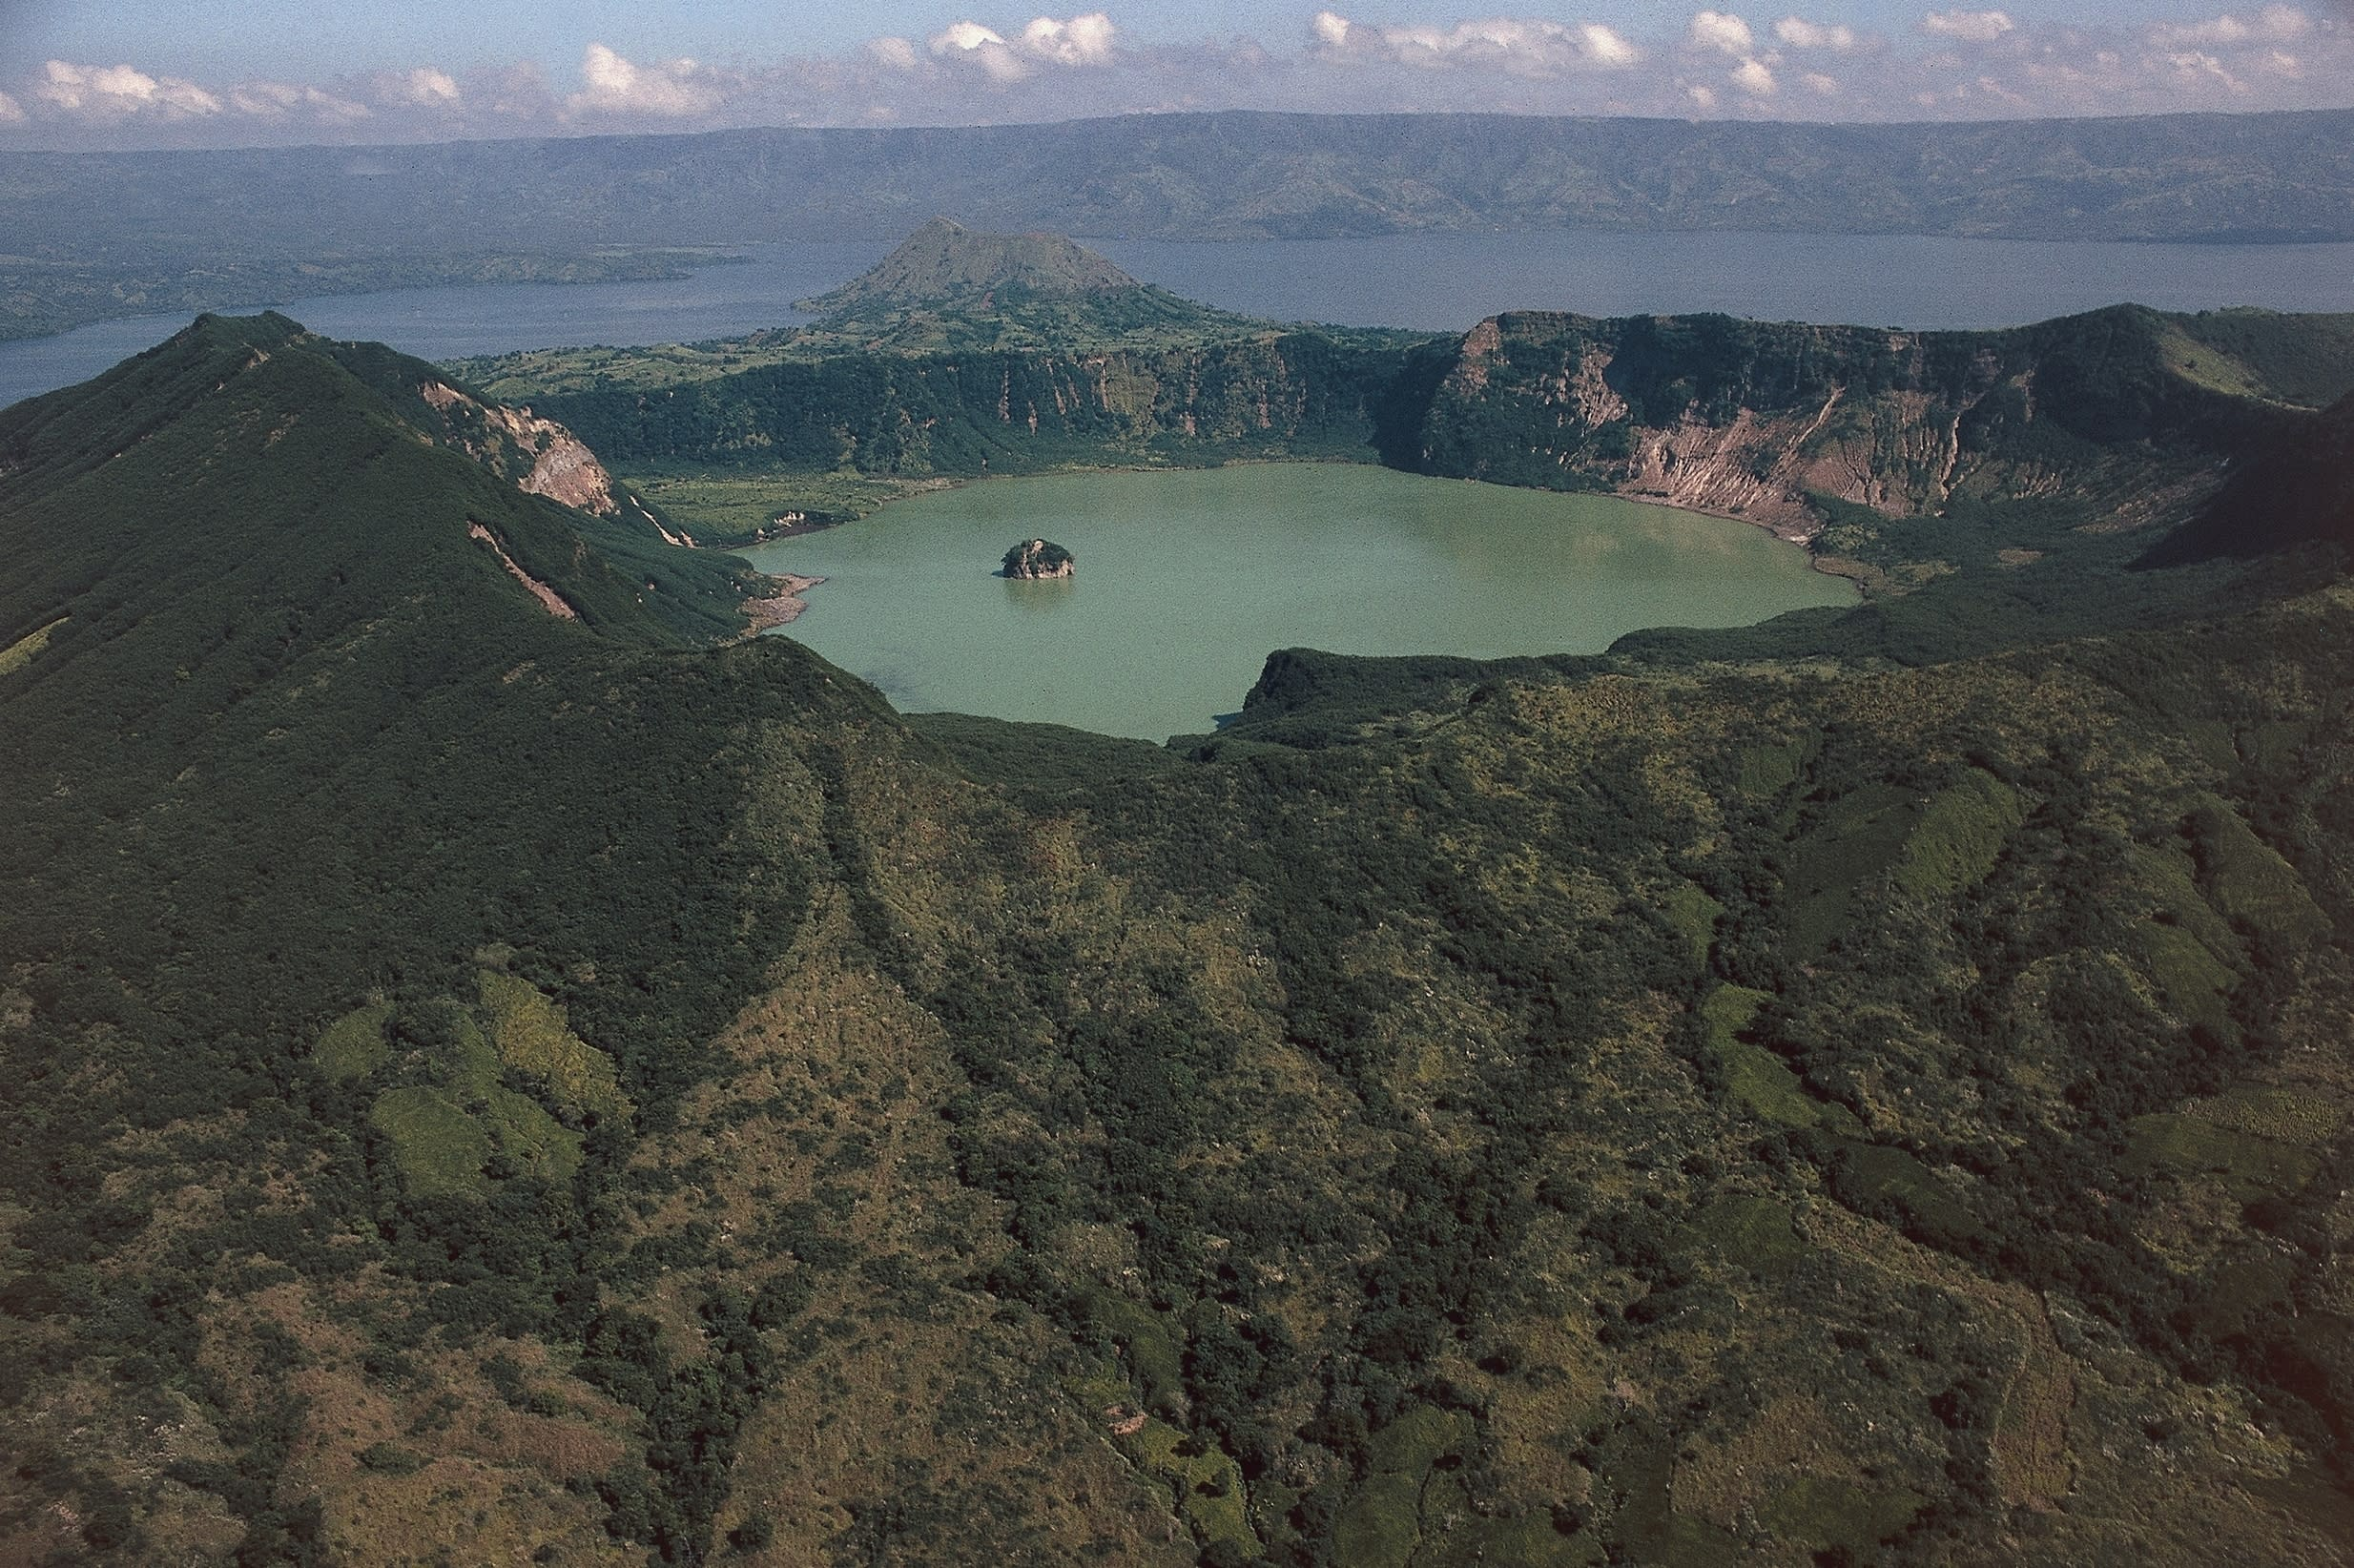 The lake on Taal Volcano on the island of Luzon in the Philippines is where you will find Vulcan Point, the world's largest island within a lake on an island within a lake on an island. Volcano Island, where Vulcan Point is found in a crater lake, is the smallest active volcano in the world and its unexplained shape and location on an island within a lake within an island, makes it a unique geologic wonder.